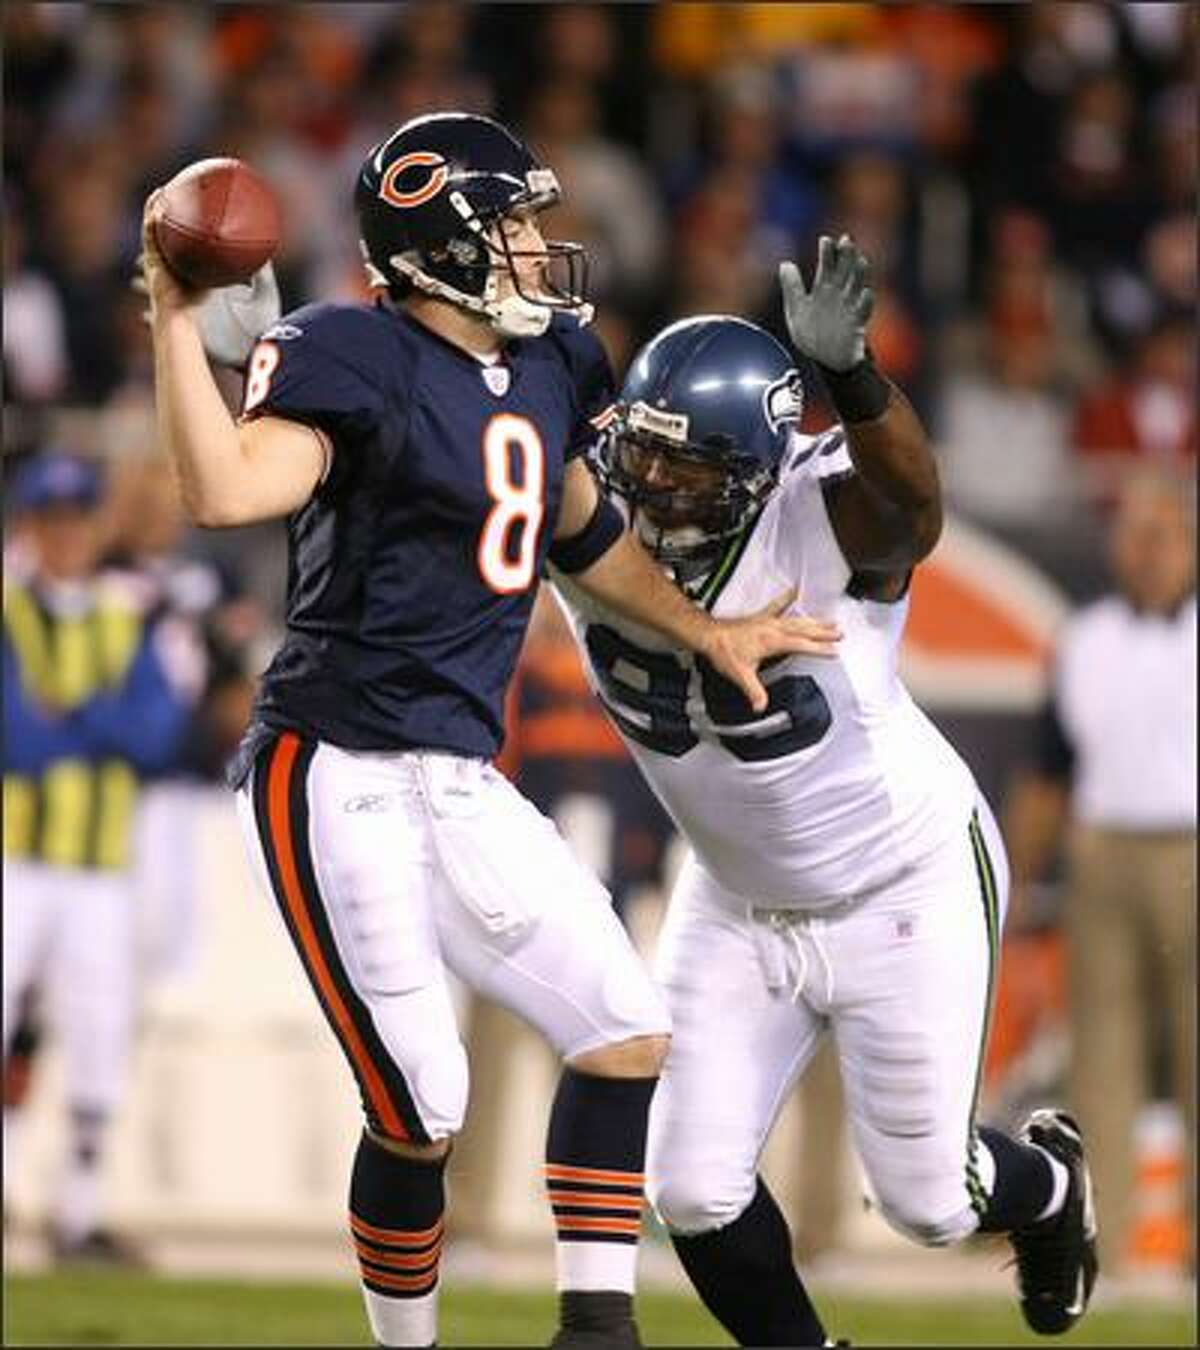 Bears quarterback Rex Grossman gets sacked in the first quarter by Seahawks defender Russell Davis.